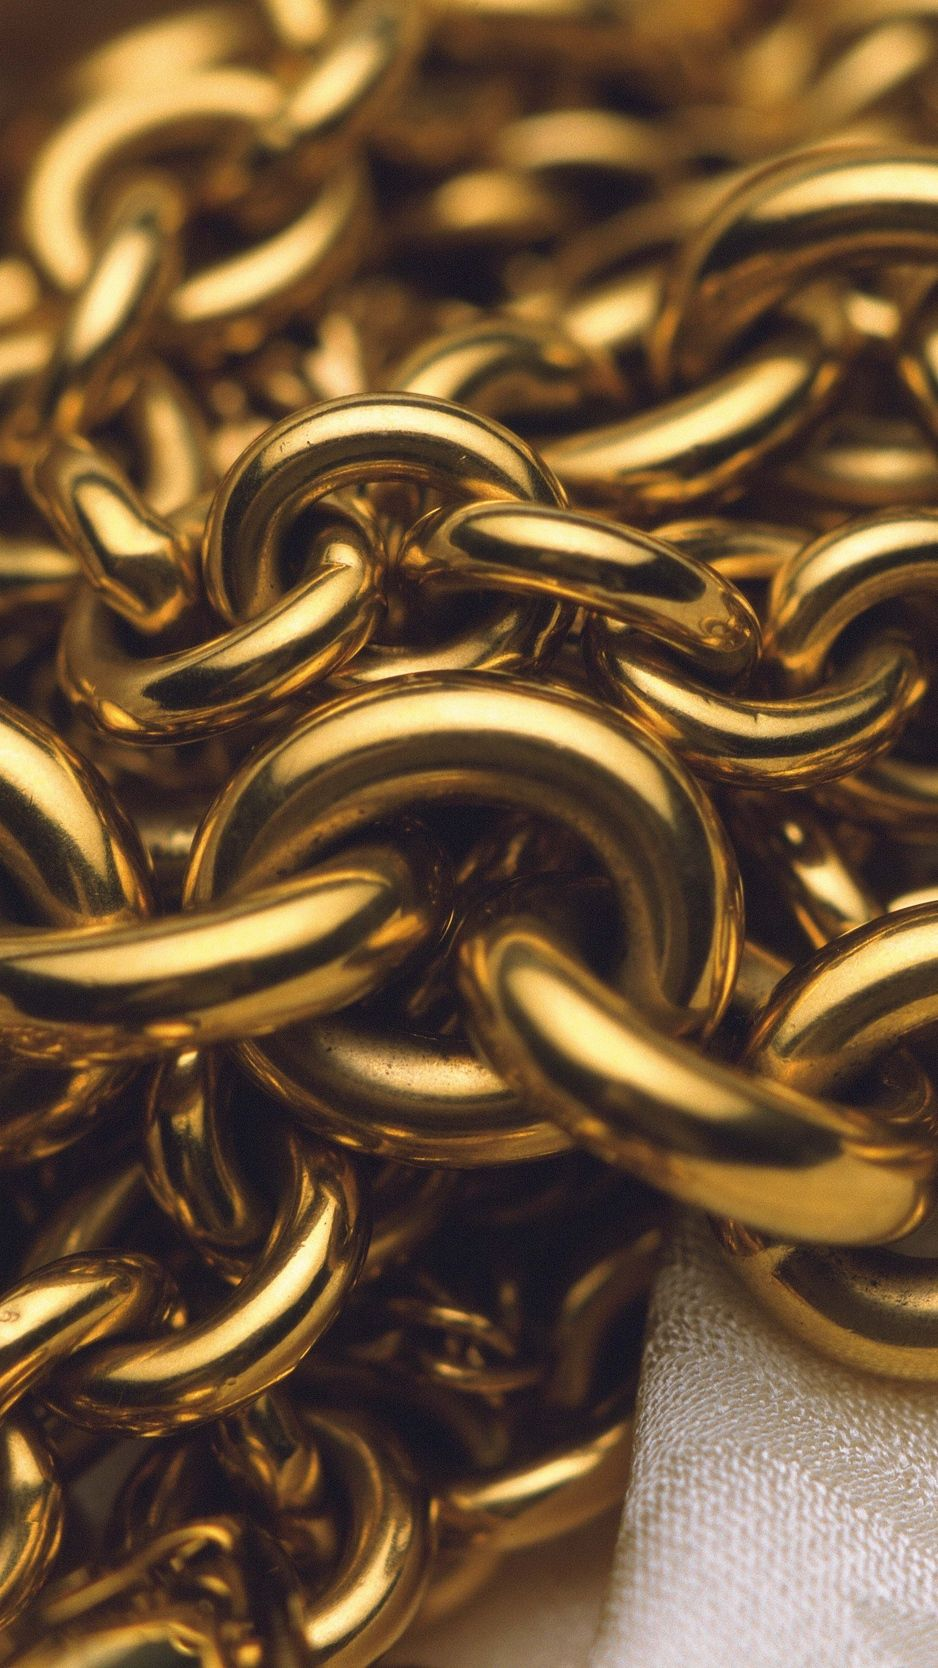 938x1668 Download wallpaper 938x1668 chain, gold, close-up iphone 8/7/6s/6 ...